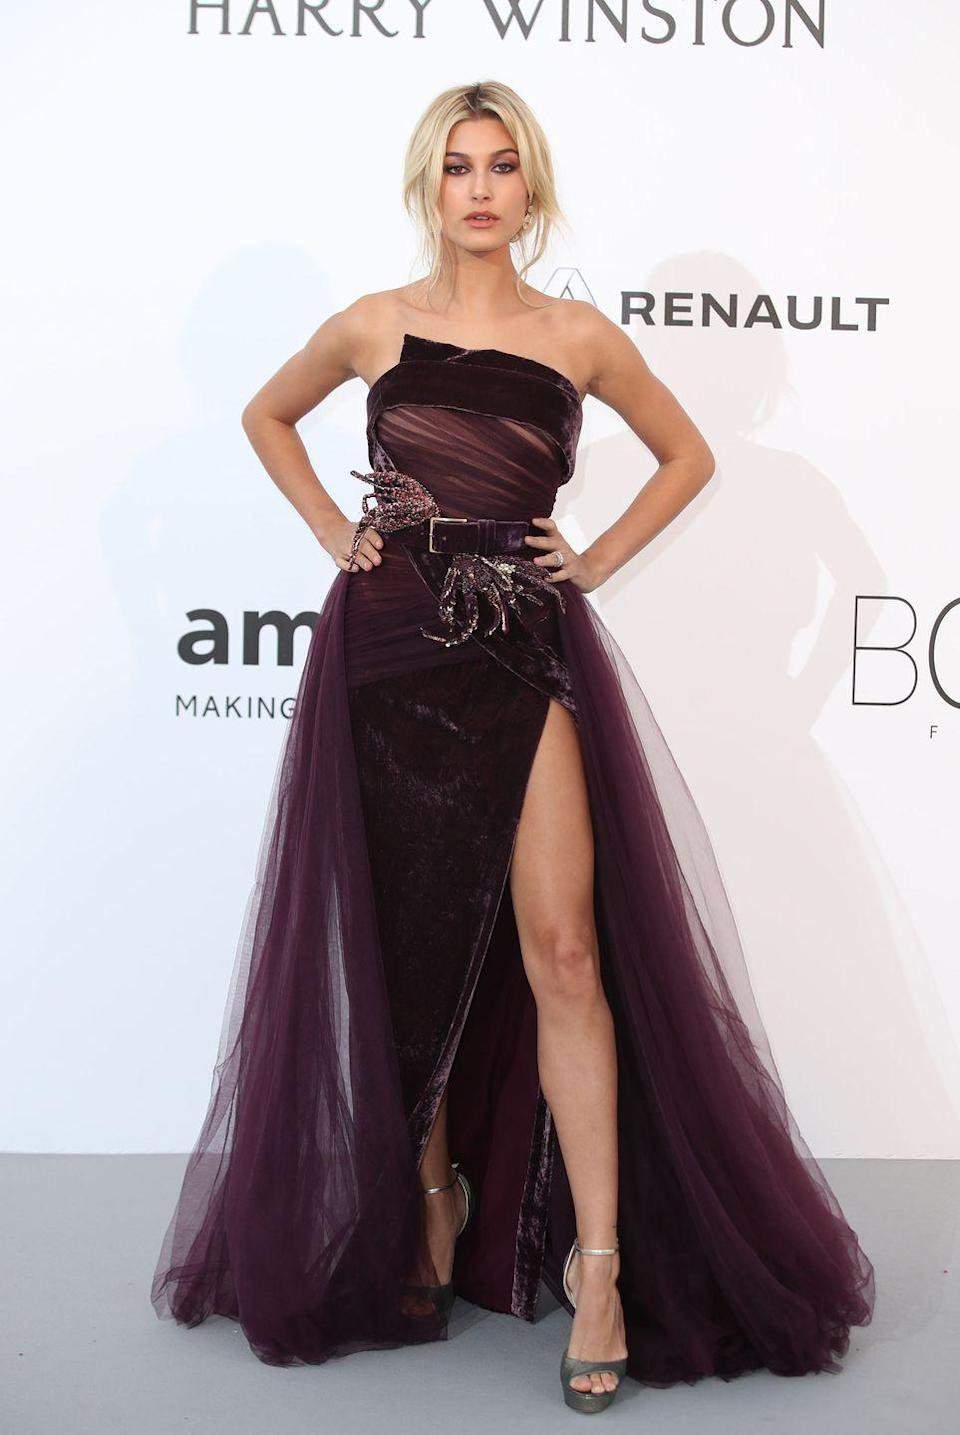 "<p>Hailey Baldwin<span class=""redactor-invisible-space""> wore a dark purple tulle Elie Saab gown to attend the amfAR gala in Cannes.</span></p>"